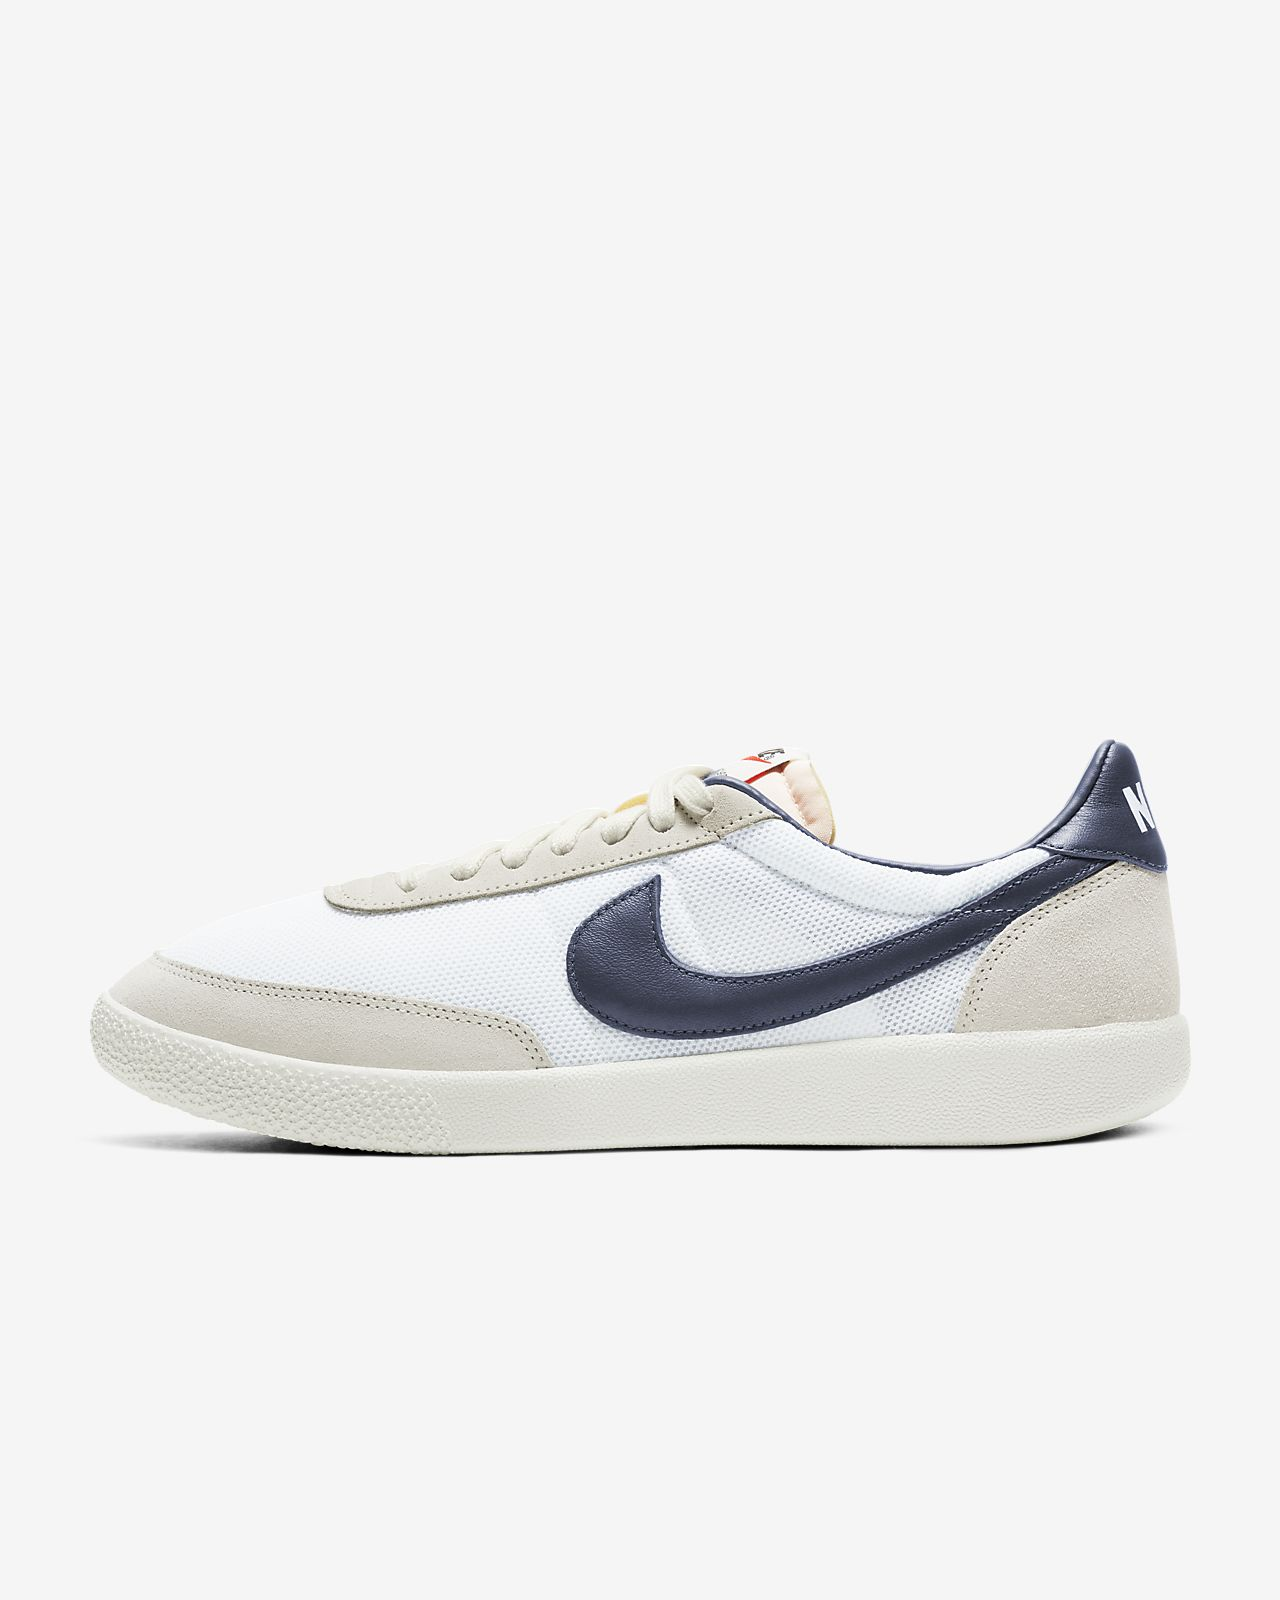 Nike Killshot OG SP Men's Shoe